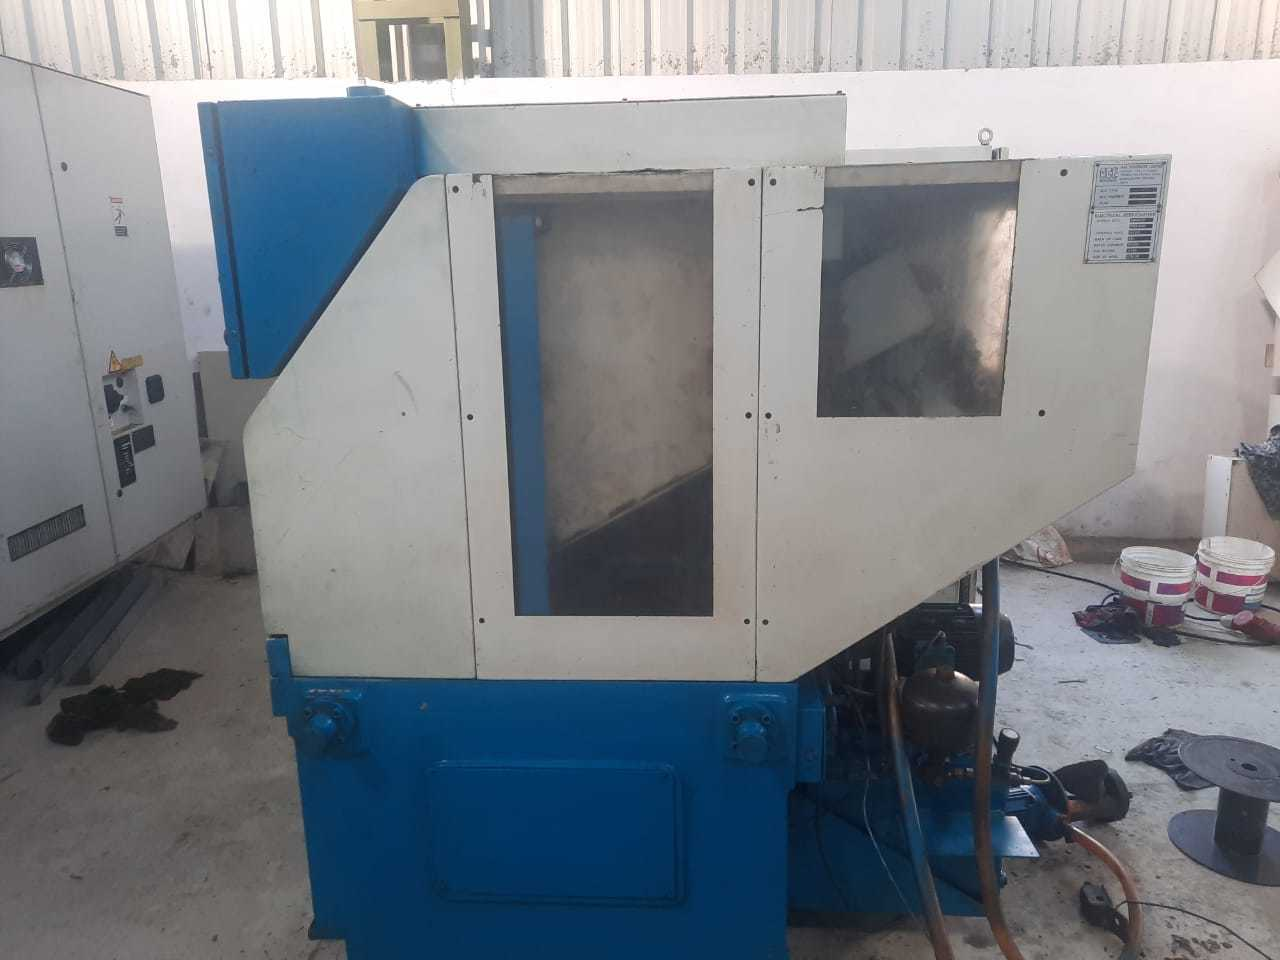 Ace Micromatic LT16 LM CNC Turning Center 2006 Model for Sale